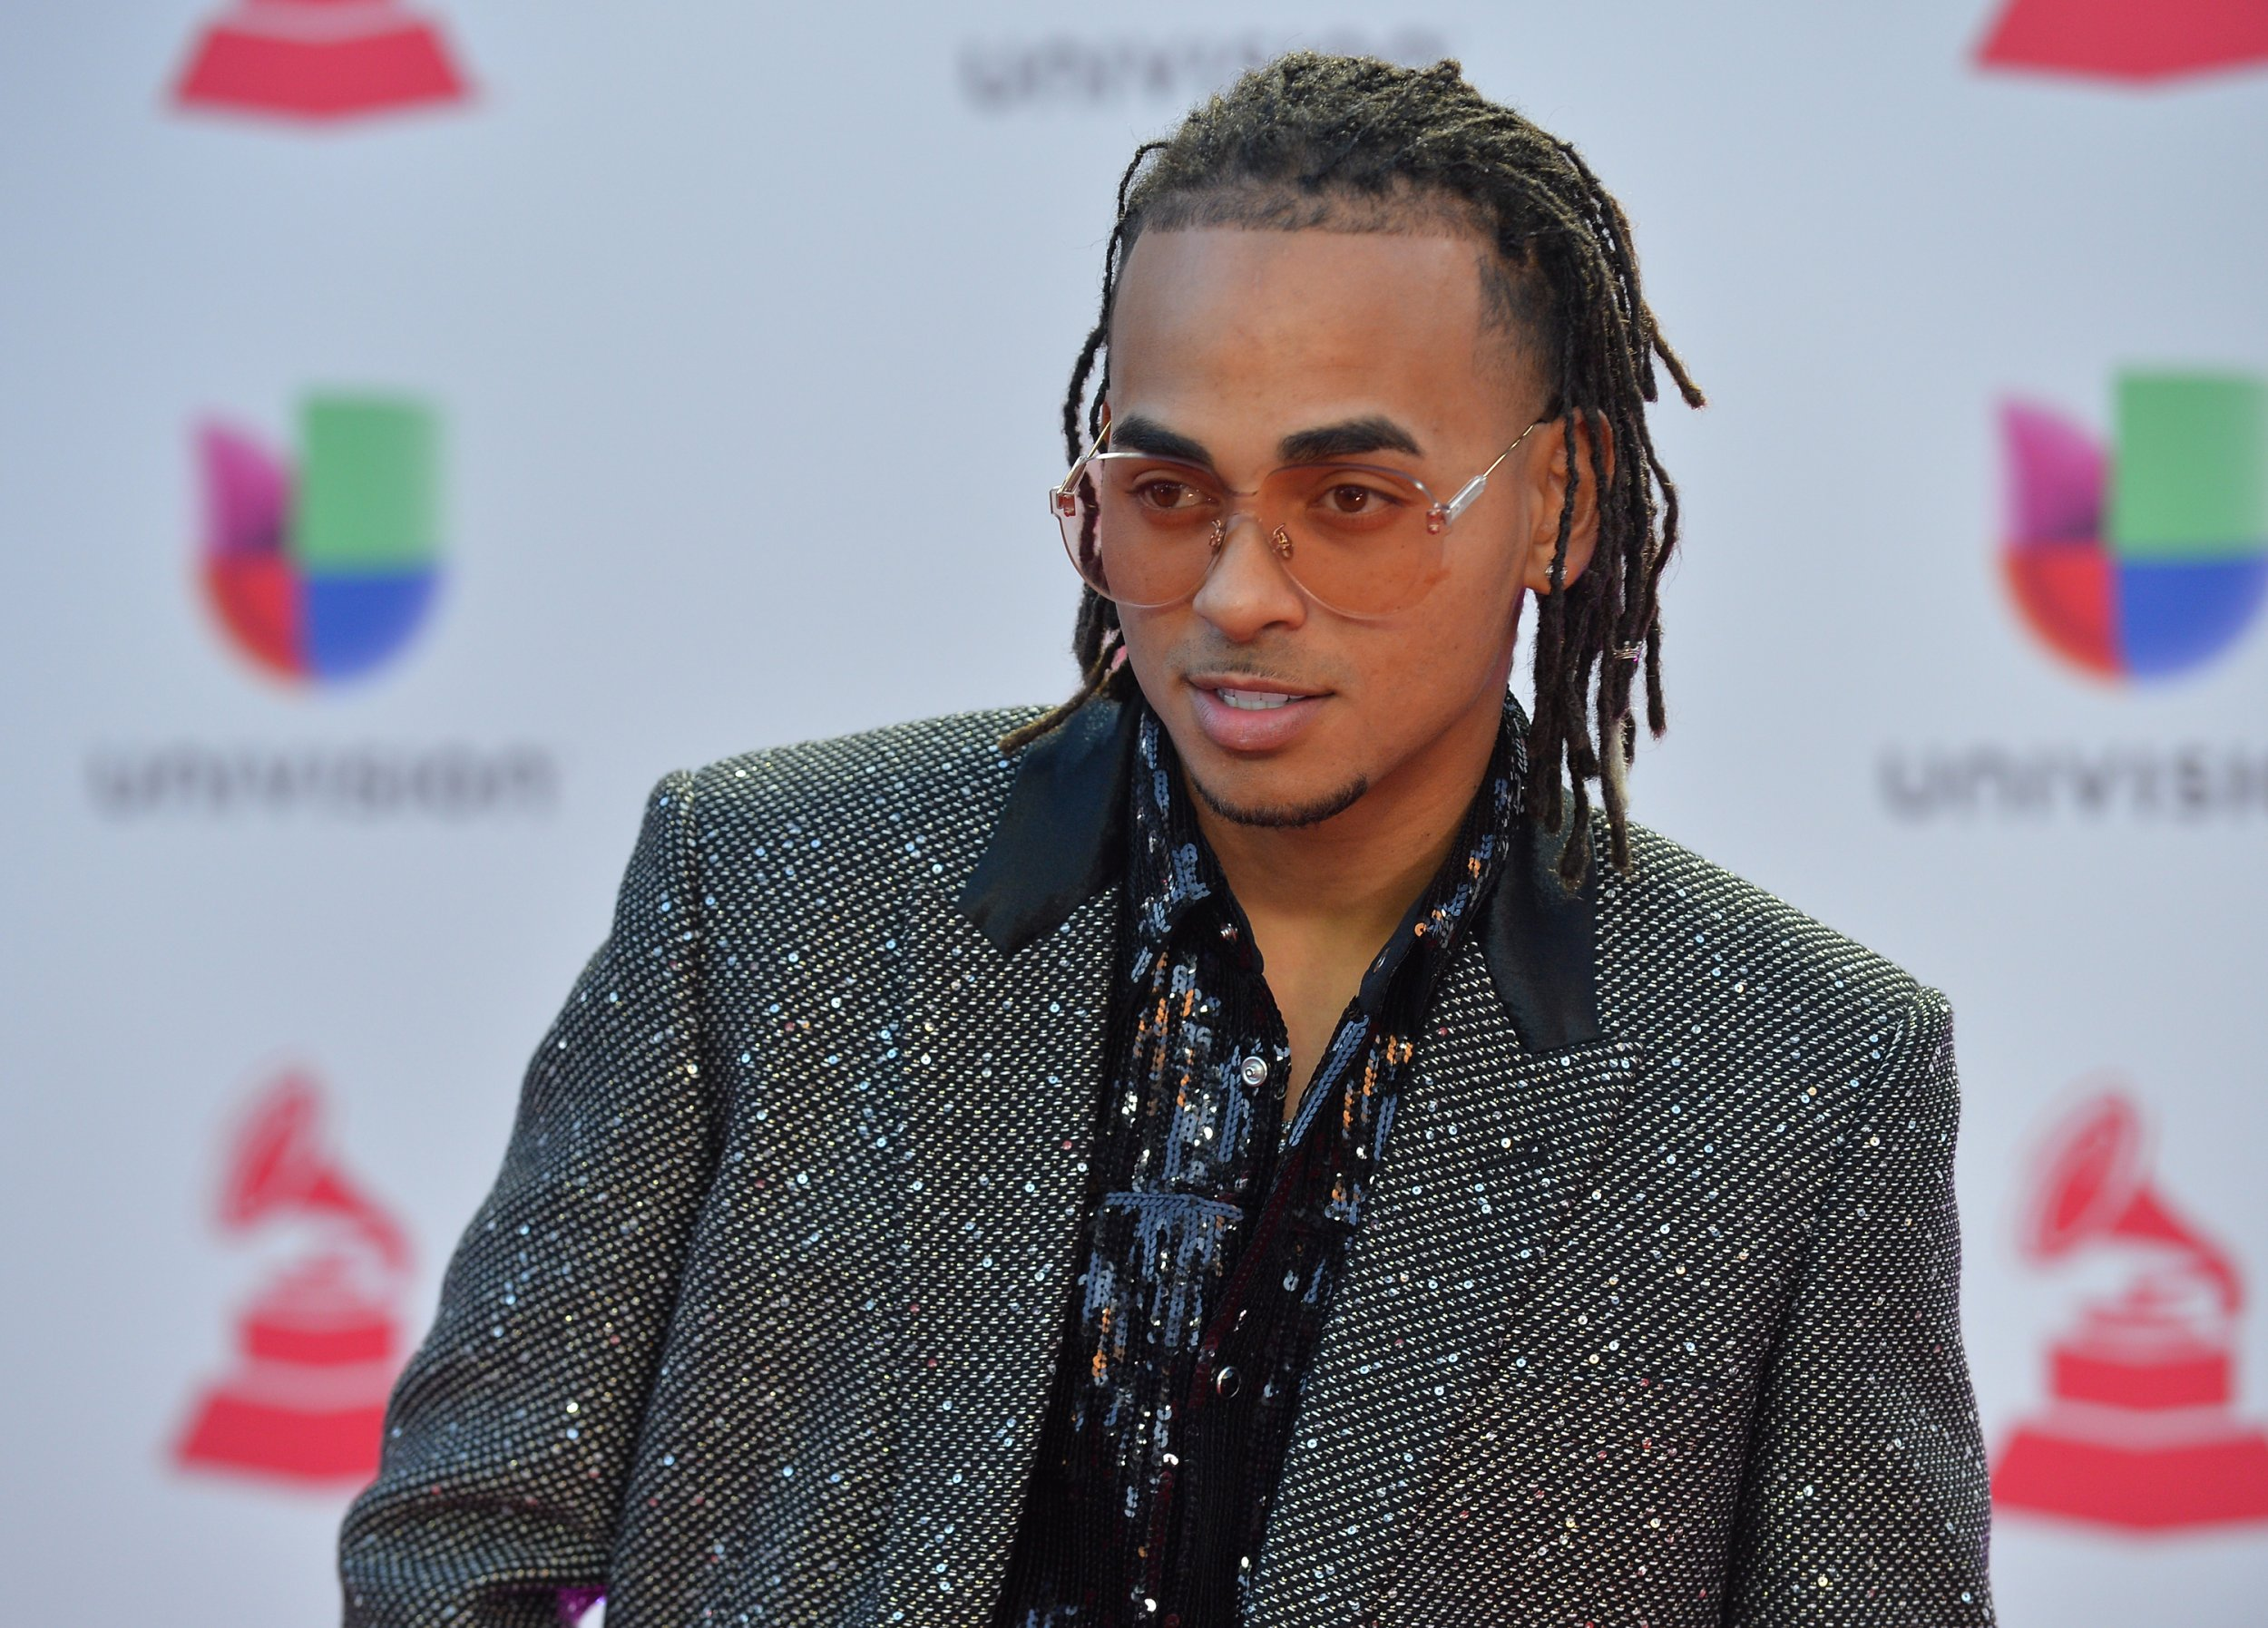 Kevin Fret's Mother Continues to Accuse Ozuna of Murder